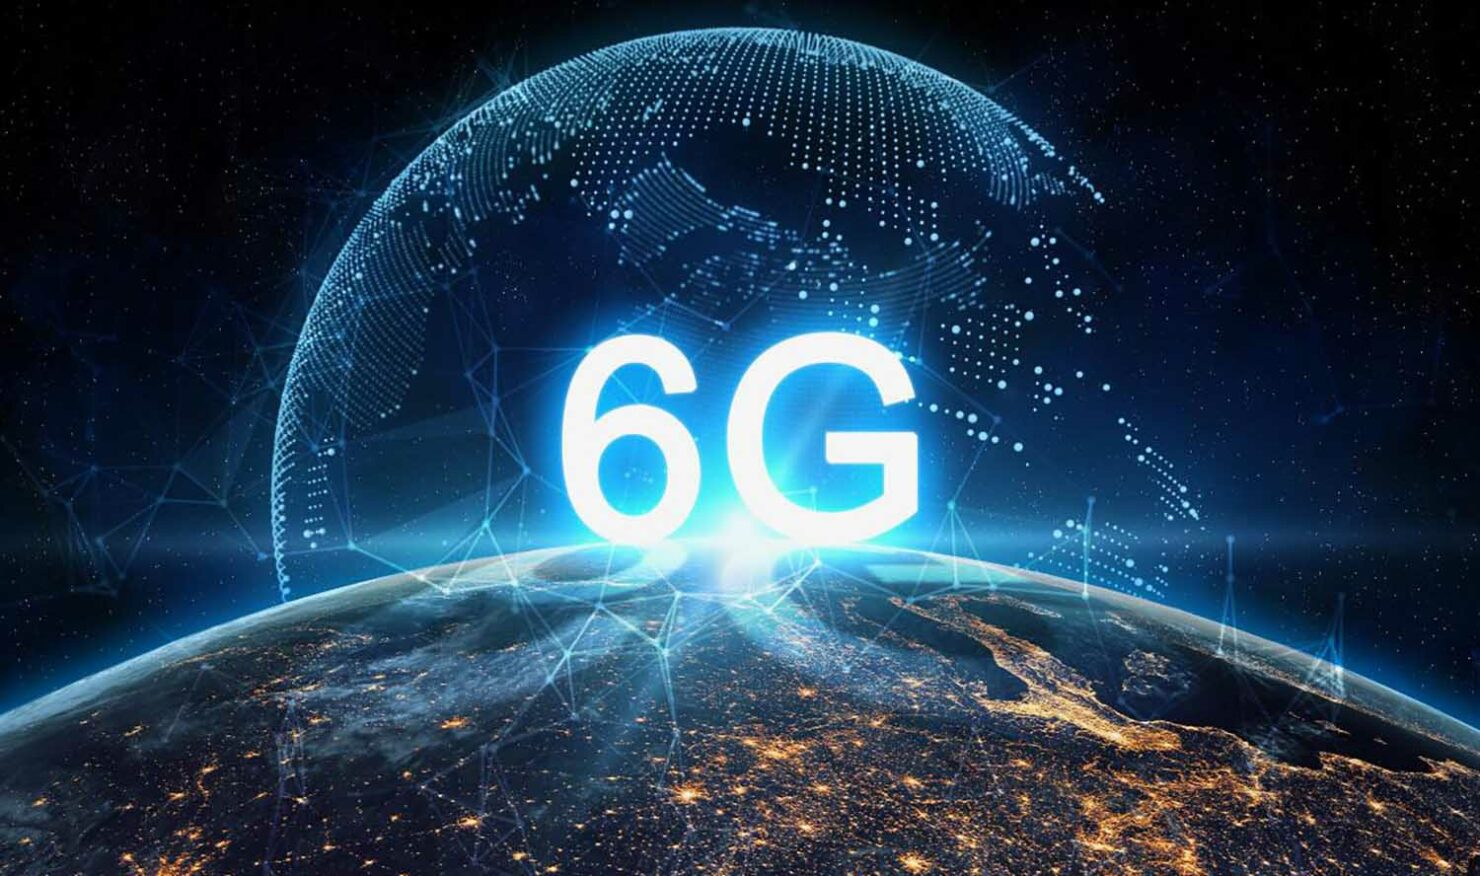 Apple Hiring Engineers to Speed up 6G Roll-out, but New Standard Isn't Expected to Work Until 2030